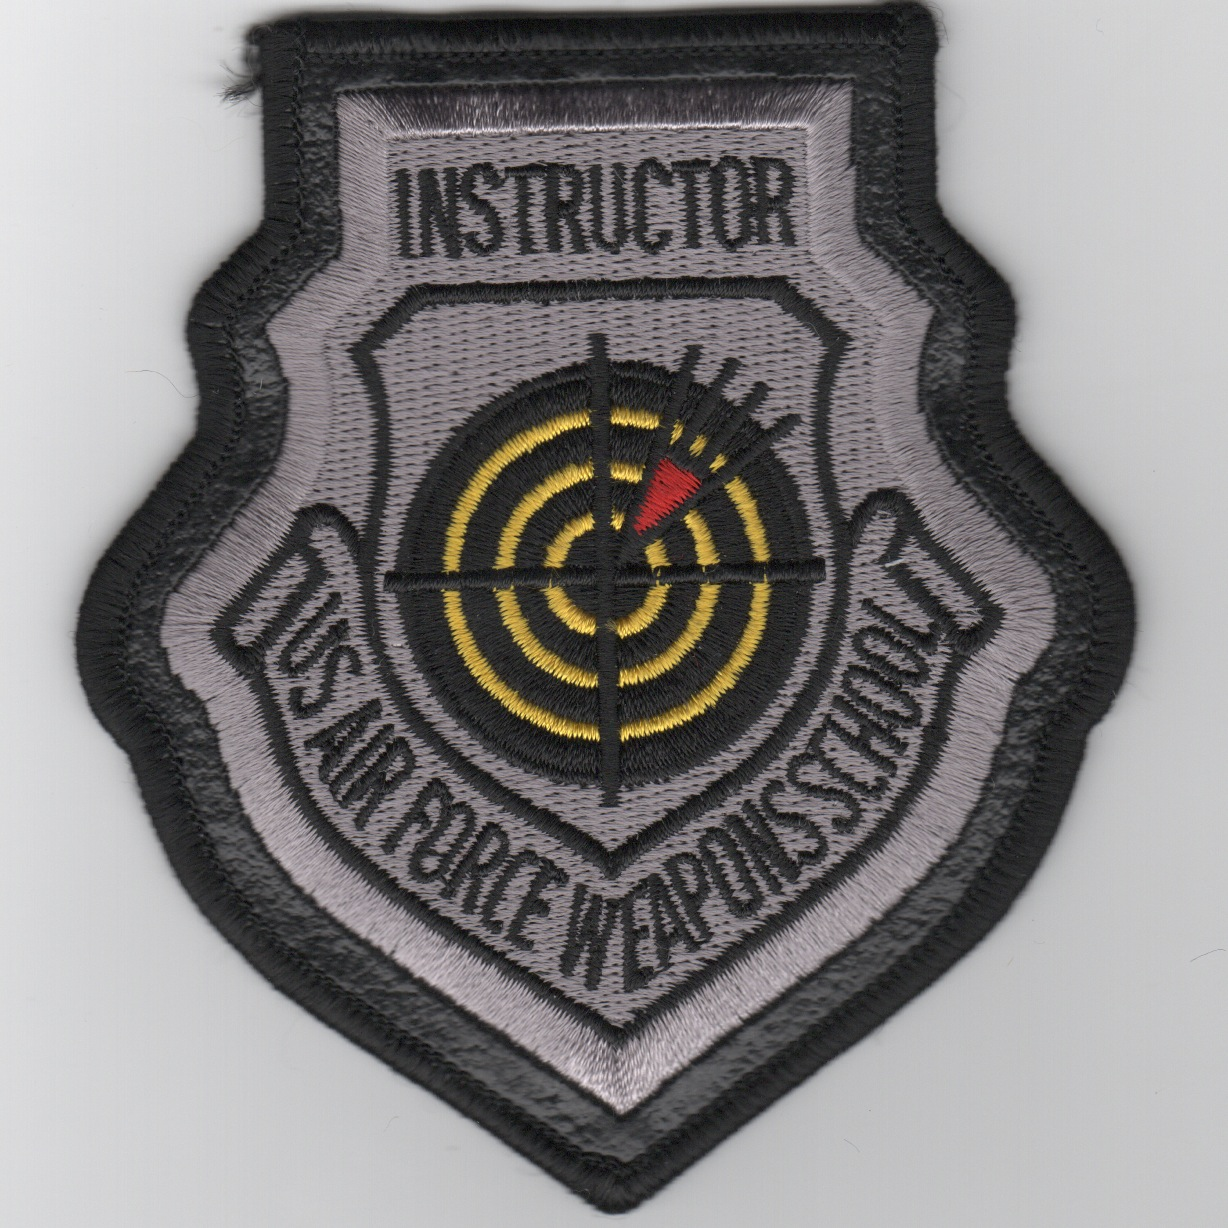 USAF Weapons School INSTRUCTOR-Leather Border